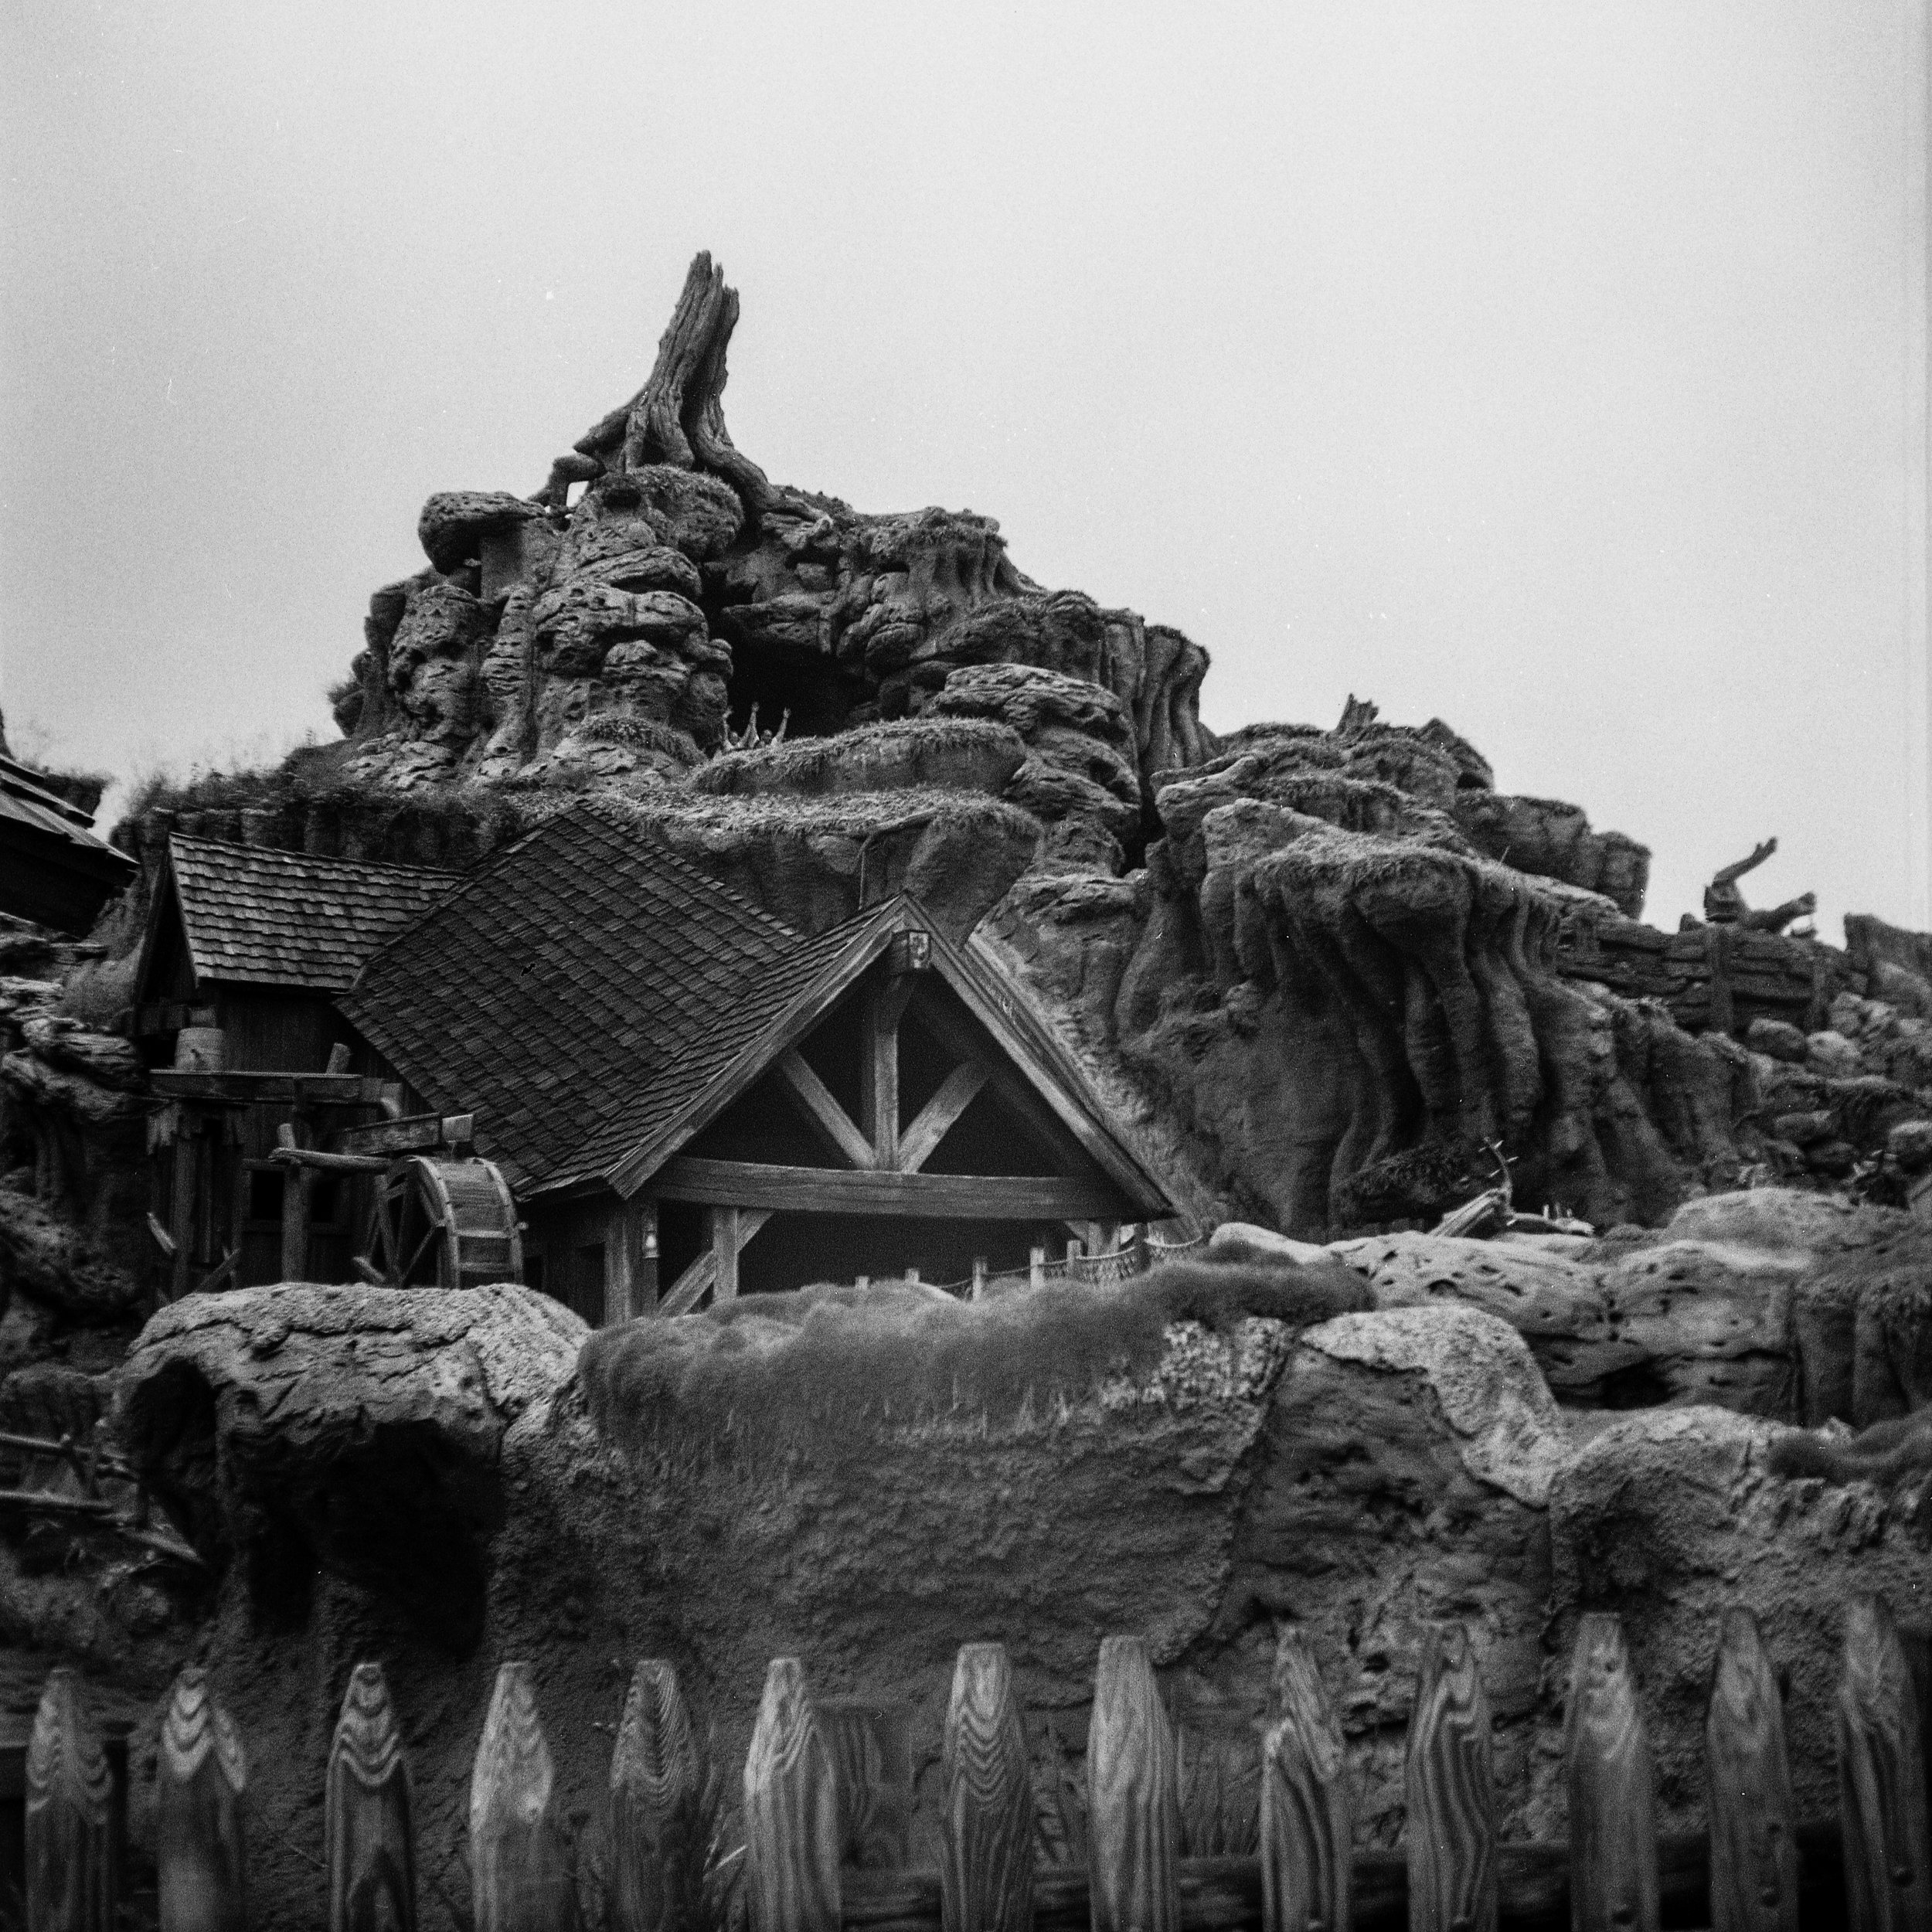 1949 Kodak Brownie Hawkeye Photo Medium Format 620 Film Zoe Kissel Photo Walt Disney World Magic Kingdom Frontierland Splash Mountain